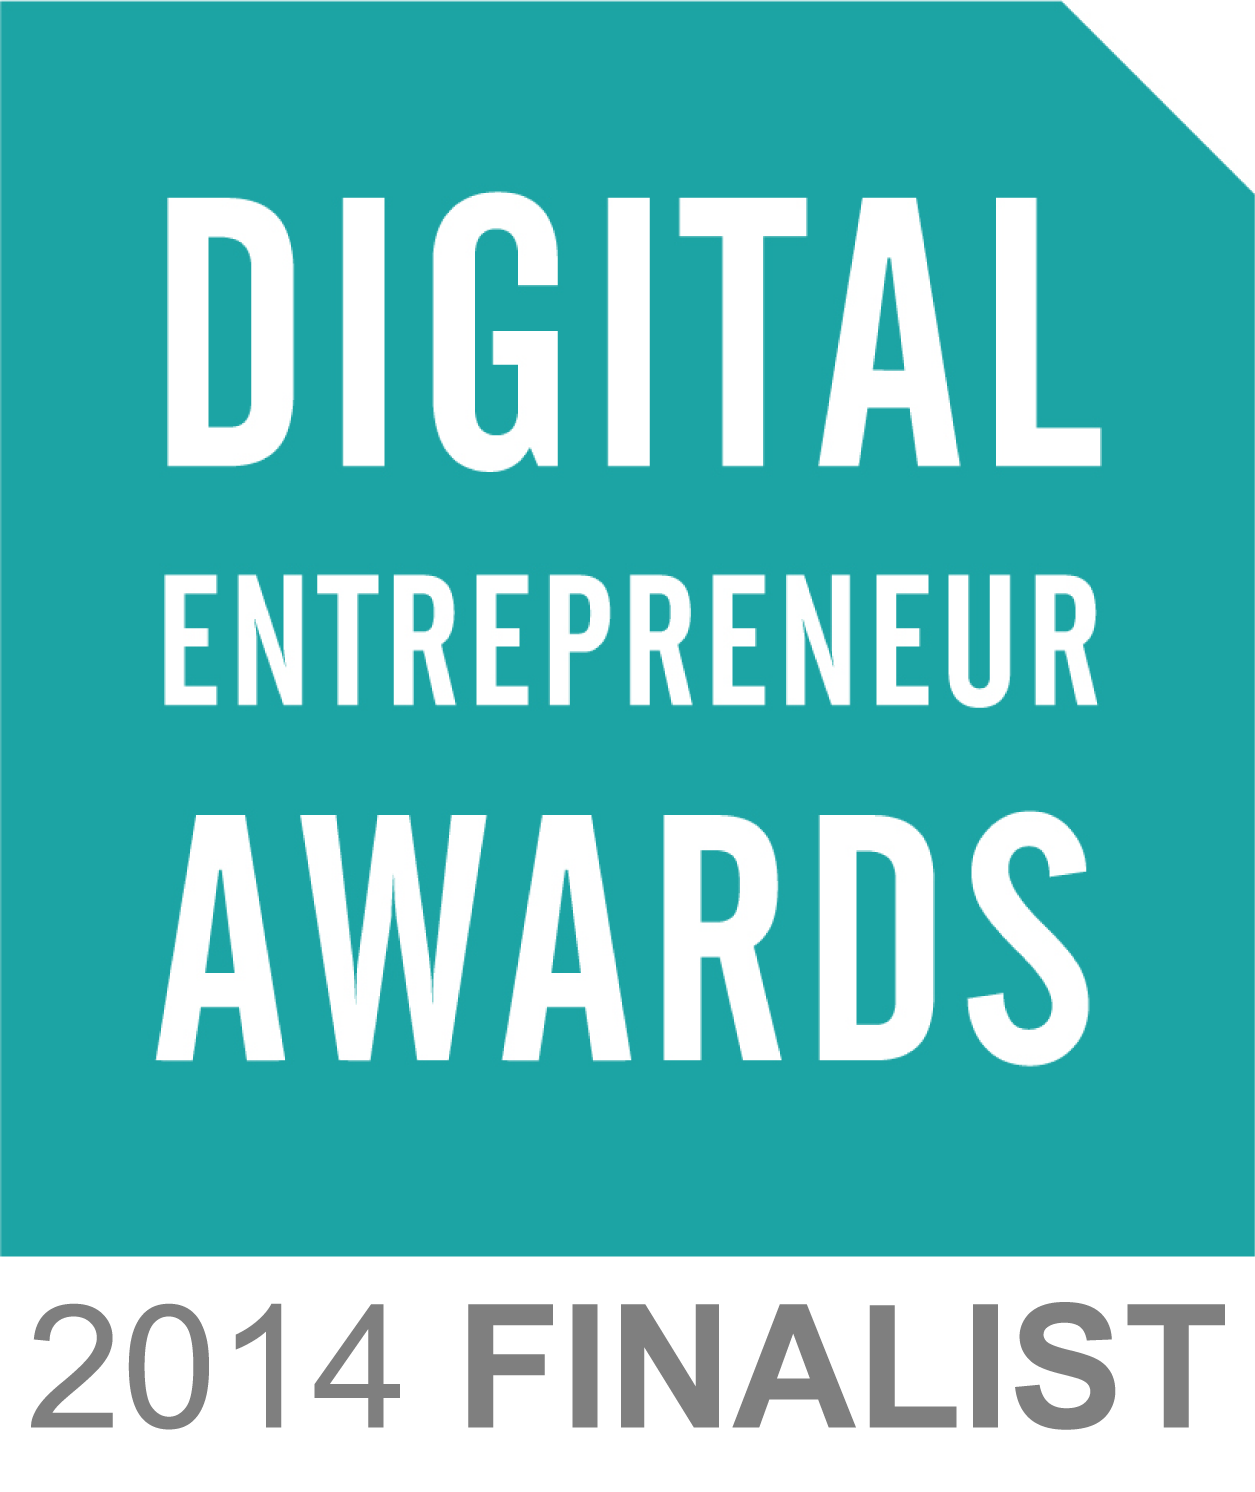 CrowdControlHQ shortlisted for Software Innovation of the Year 2014 in the Digital Entrepreneur Awards